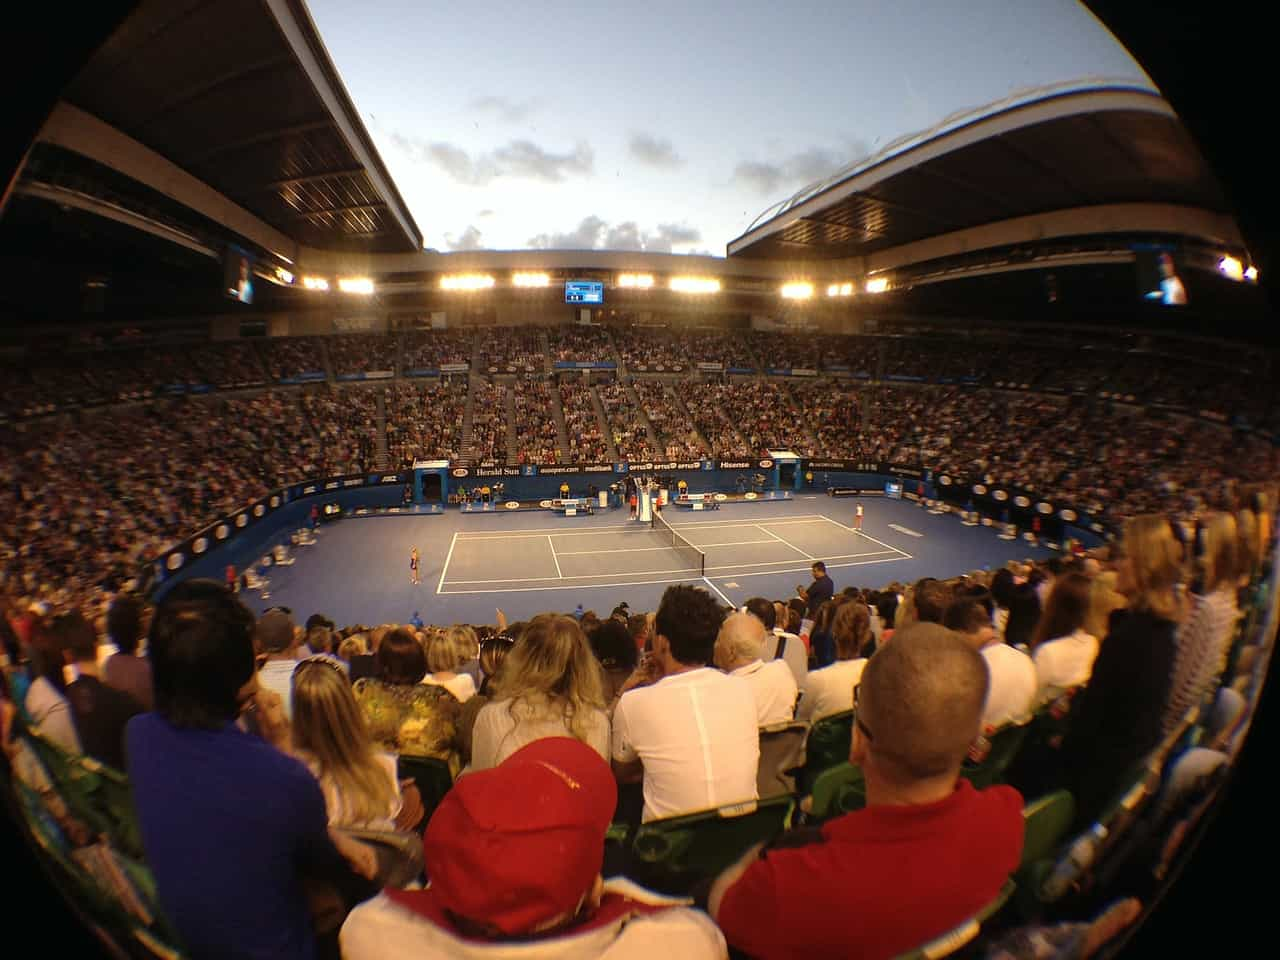 Fish-eye camera view of a tennis court and the surrounding stadium